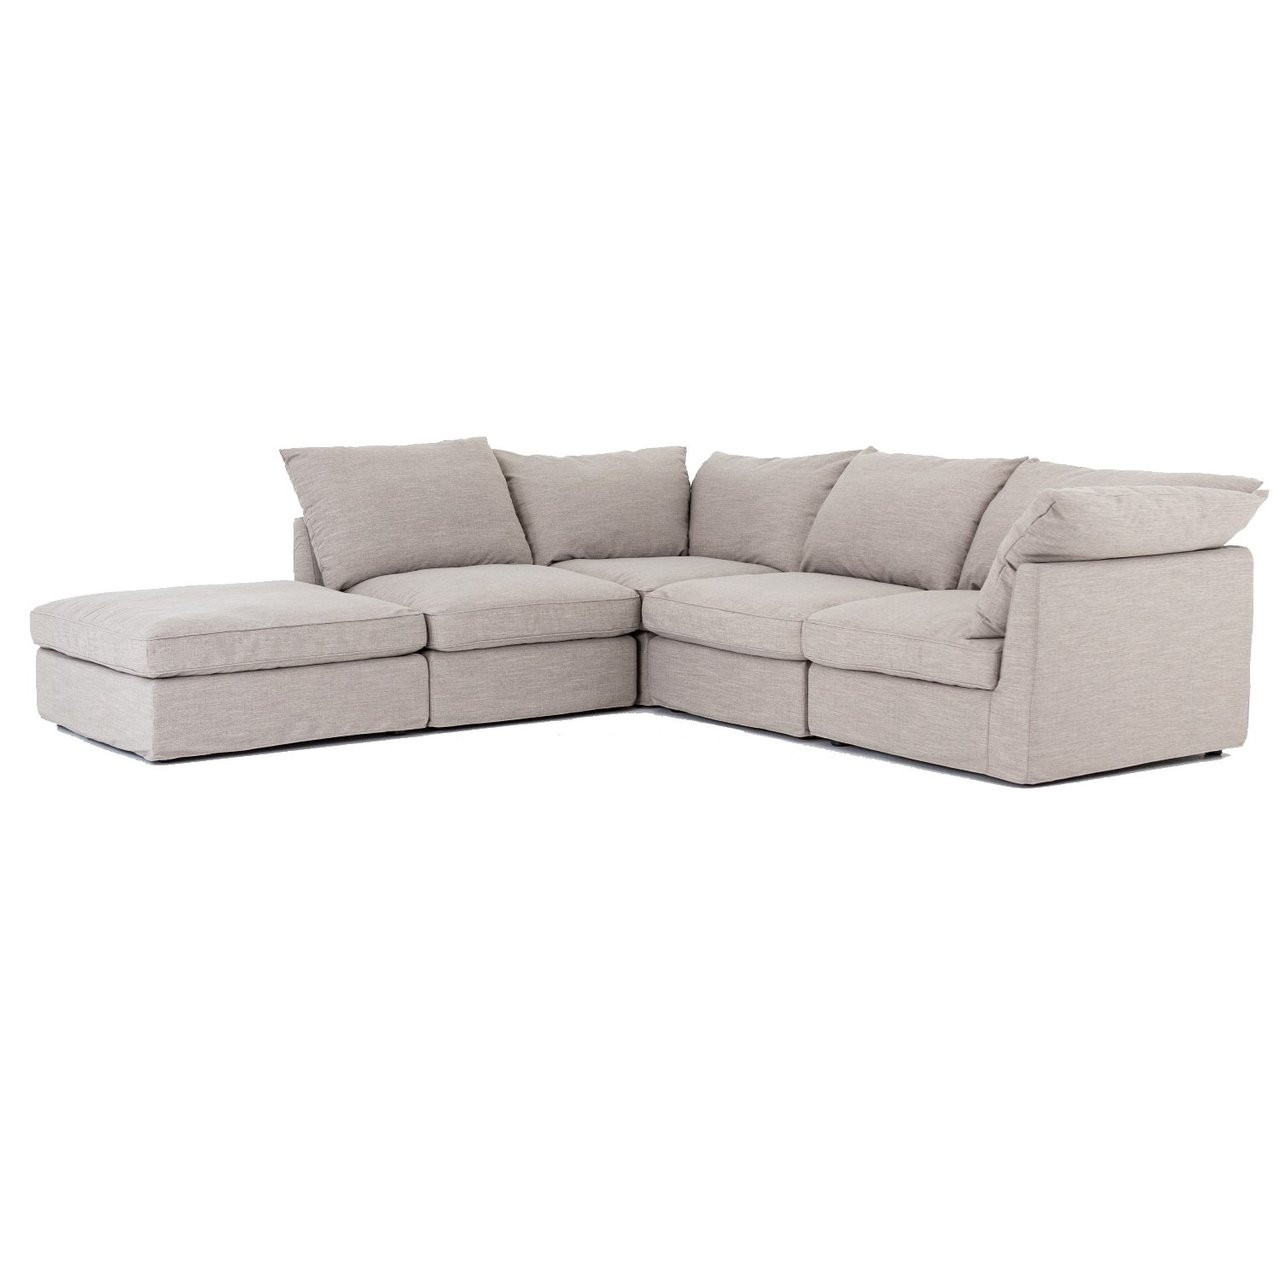 Paul Coastal Grey 5-Piece Modular Sectional Sofa